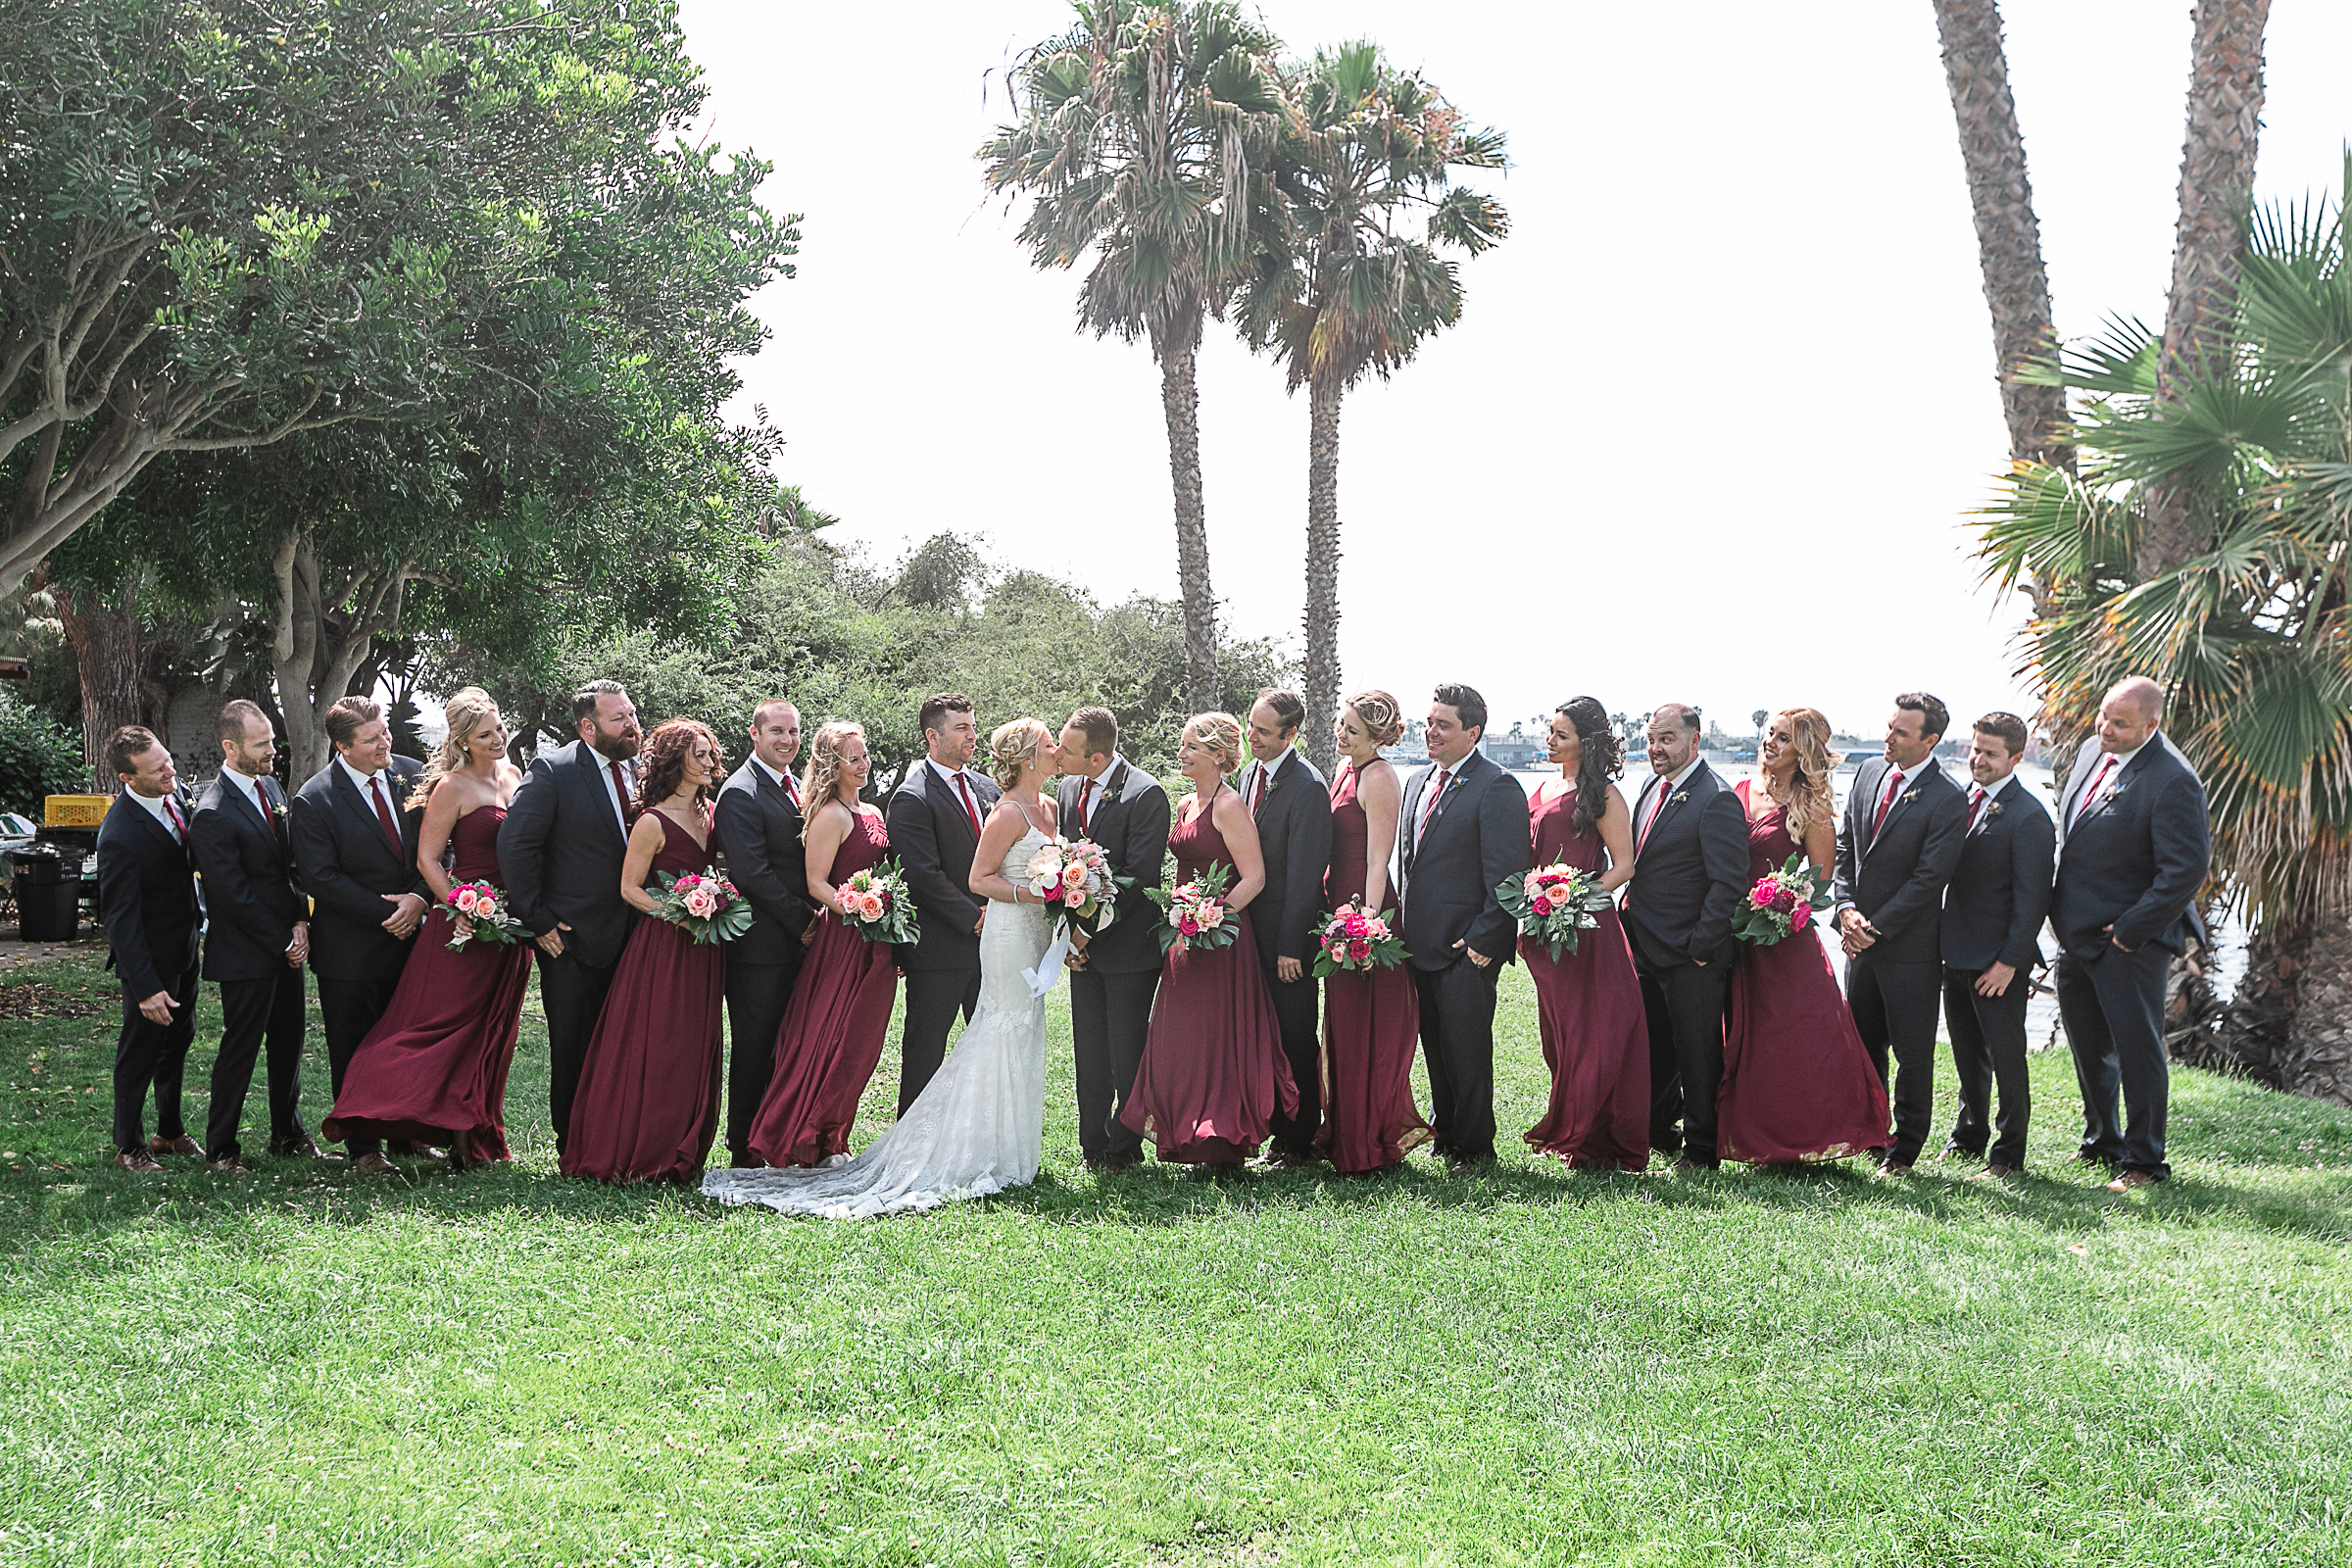 Heather and Chad's Wedding at Coronado community Center and Paradise Point-17.jpg